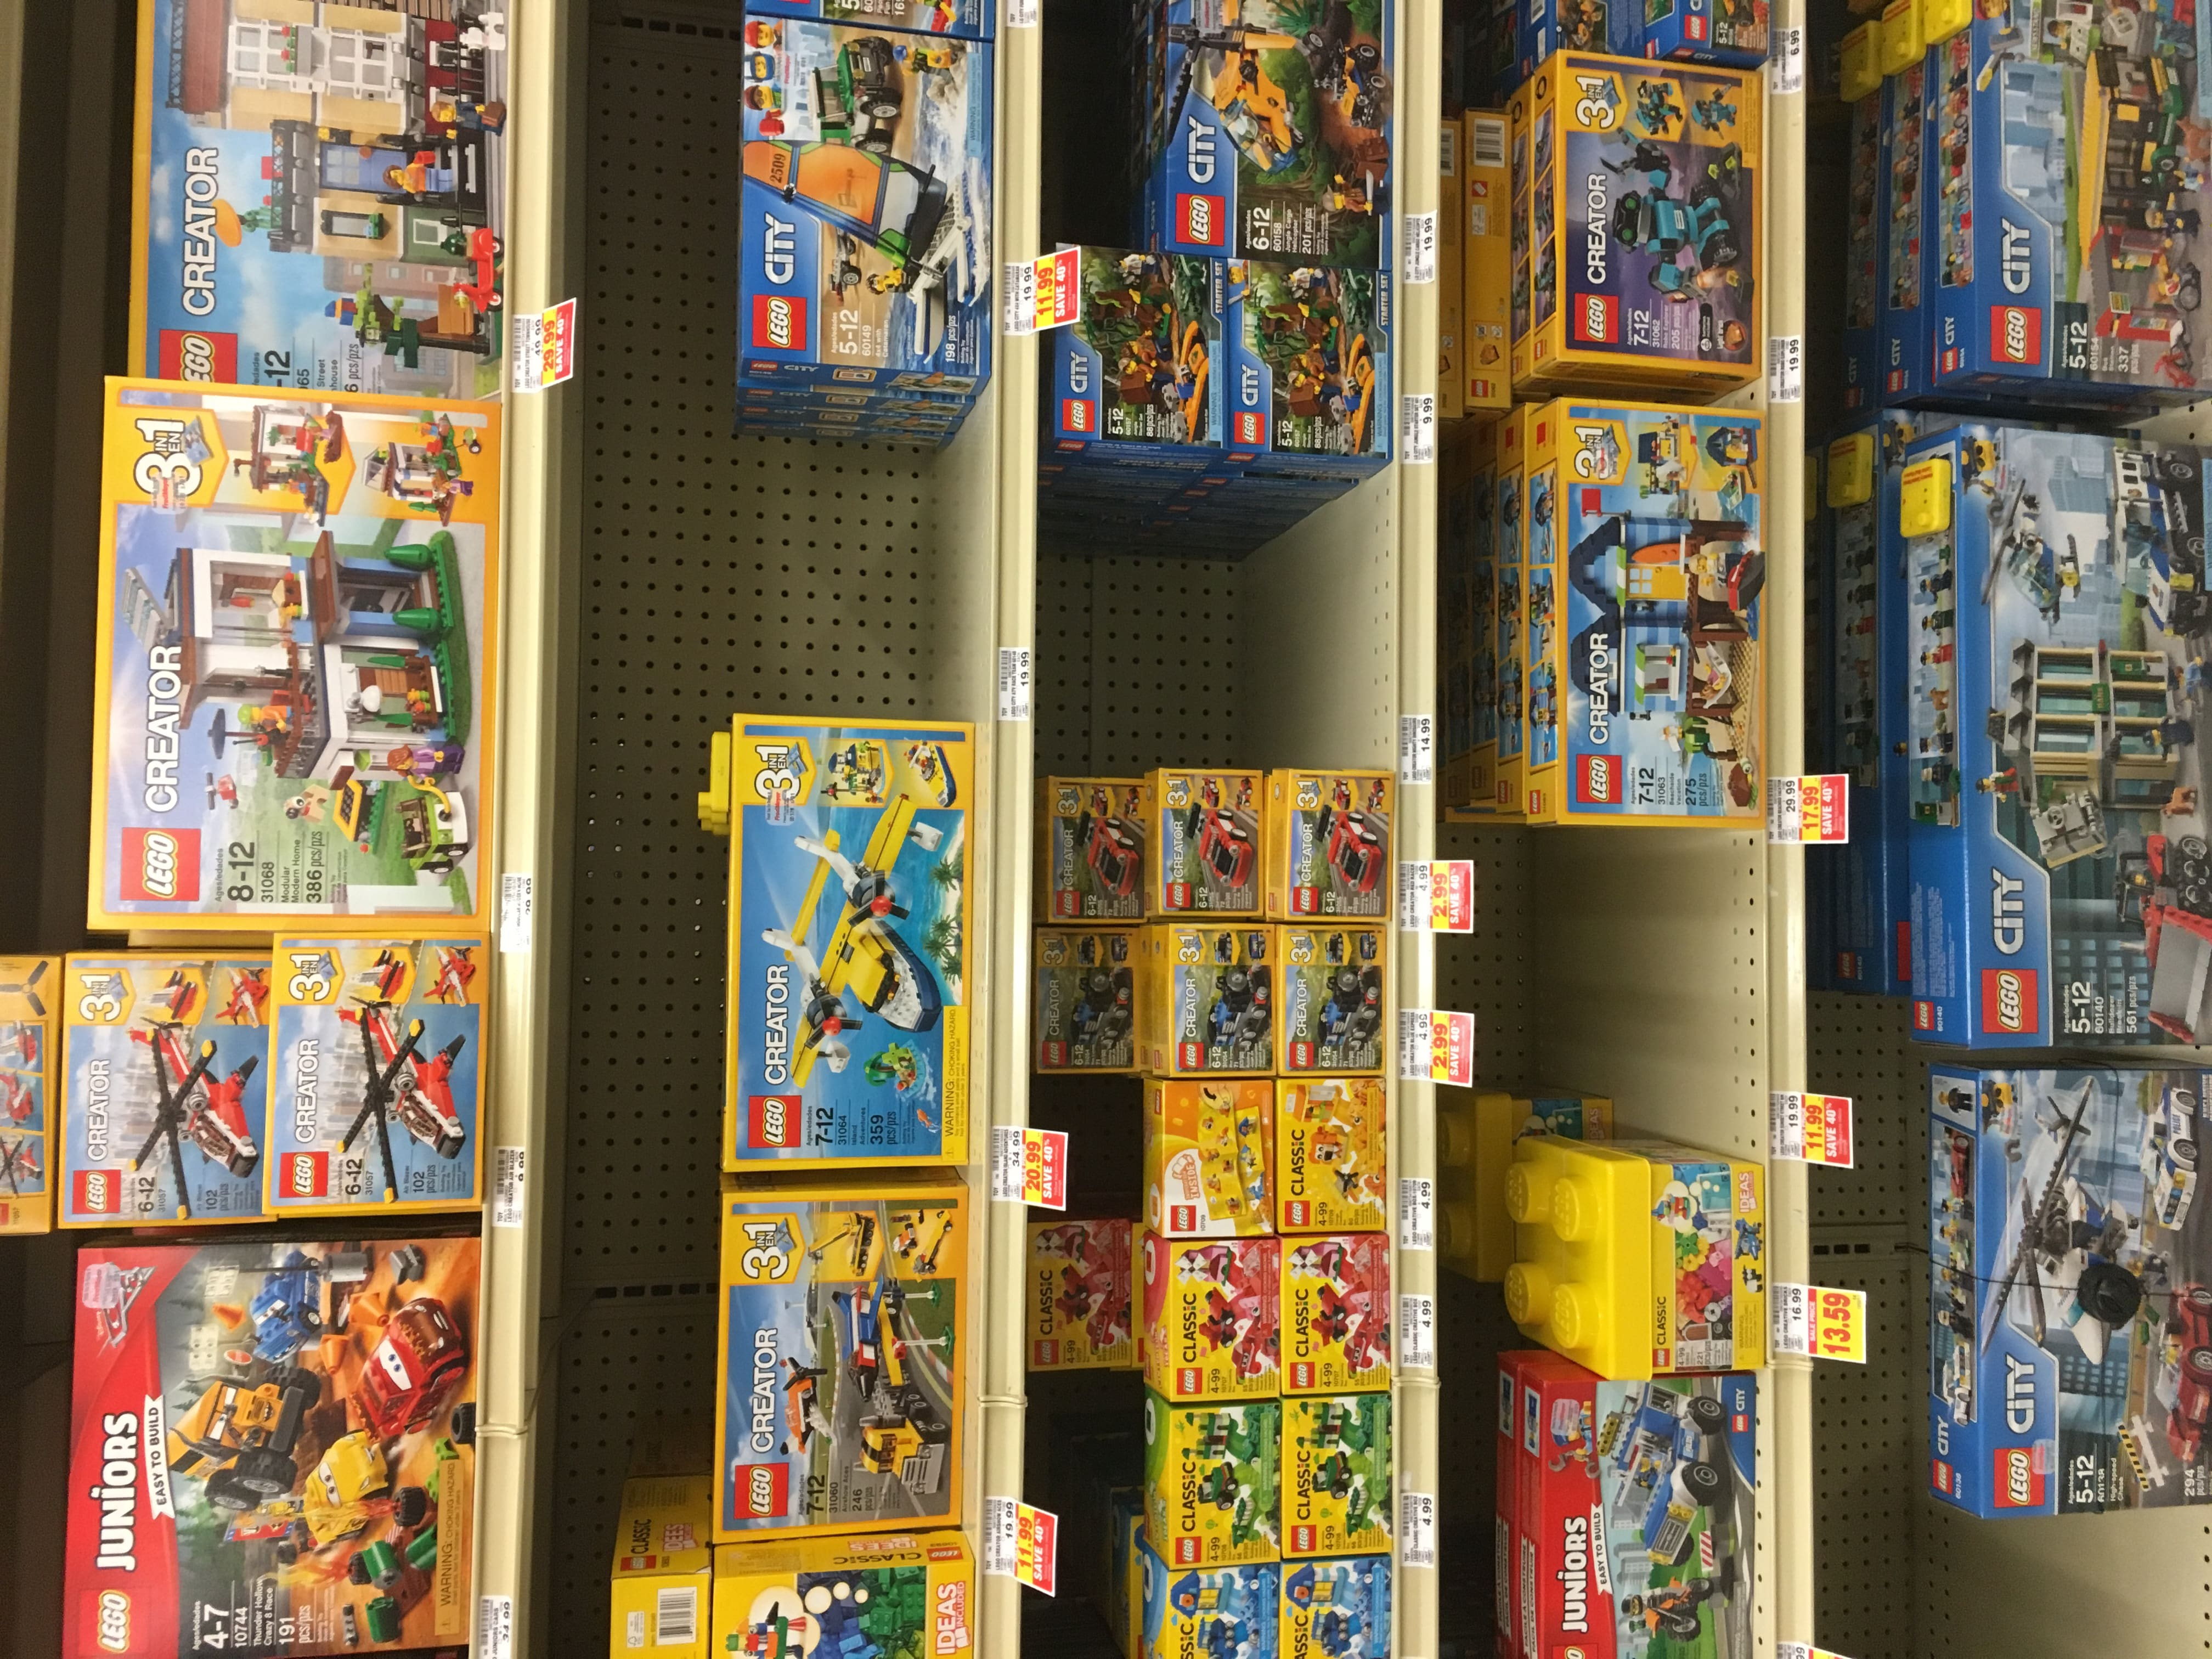 Fred Meyer Legos 40% off +15% off on 11/29 ONLY